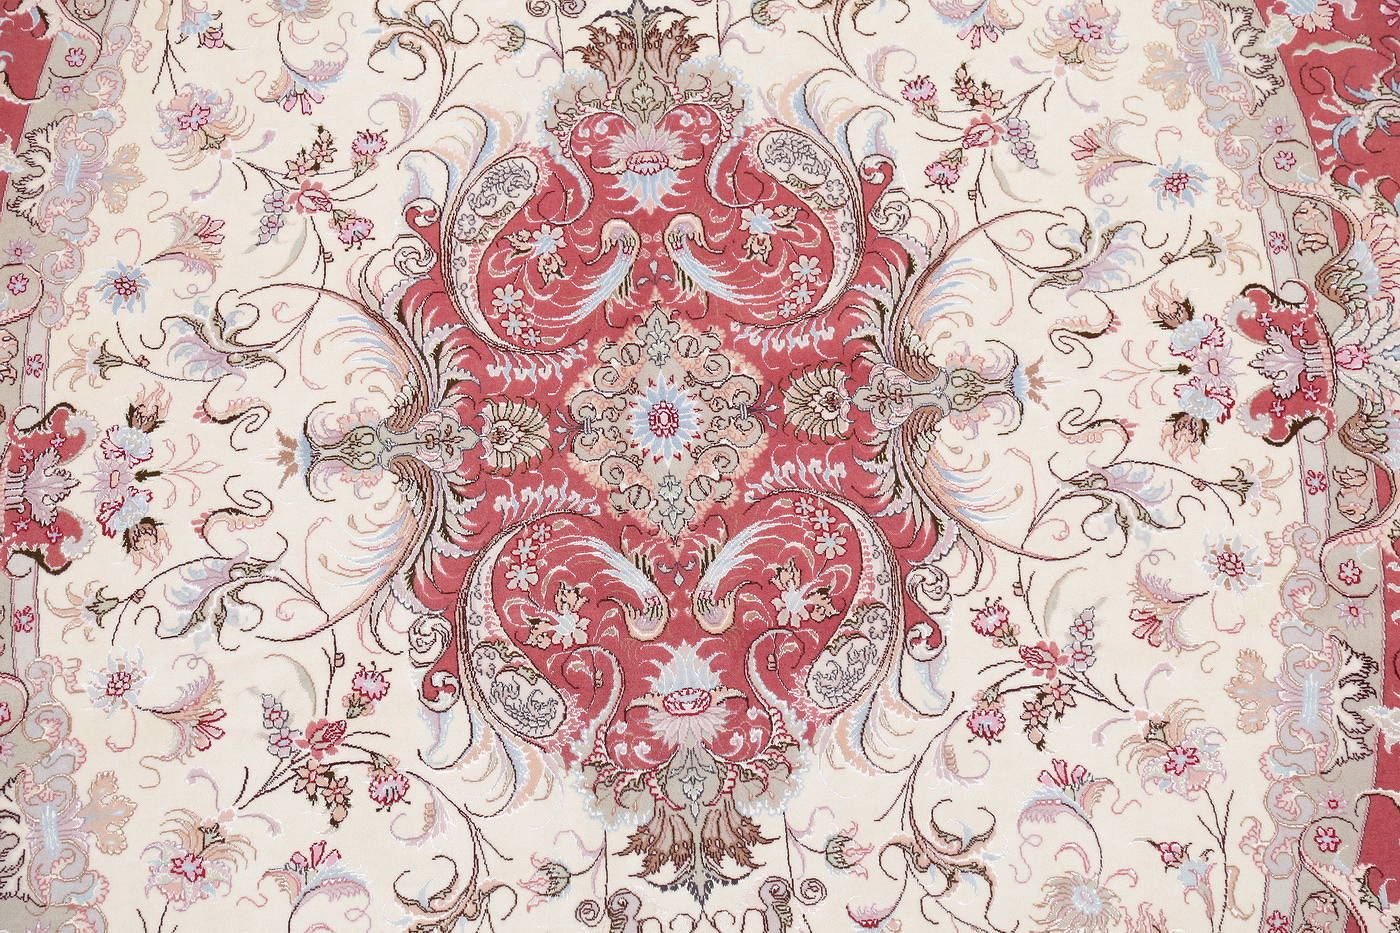 Ivory Floral Tabriz Persian Oval Area Rug 7x10 image 4